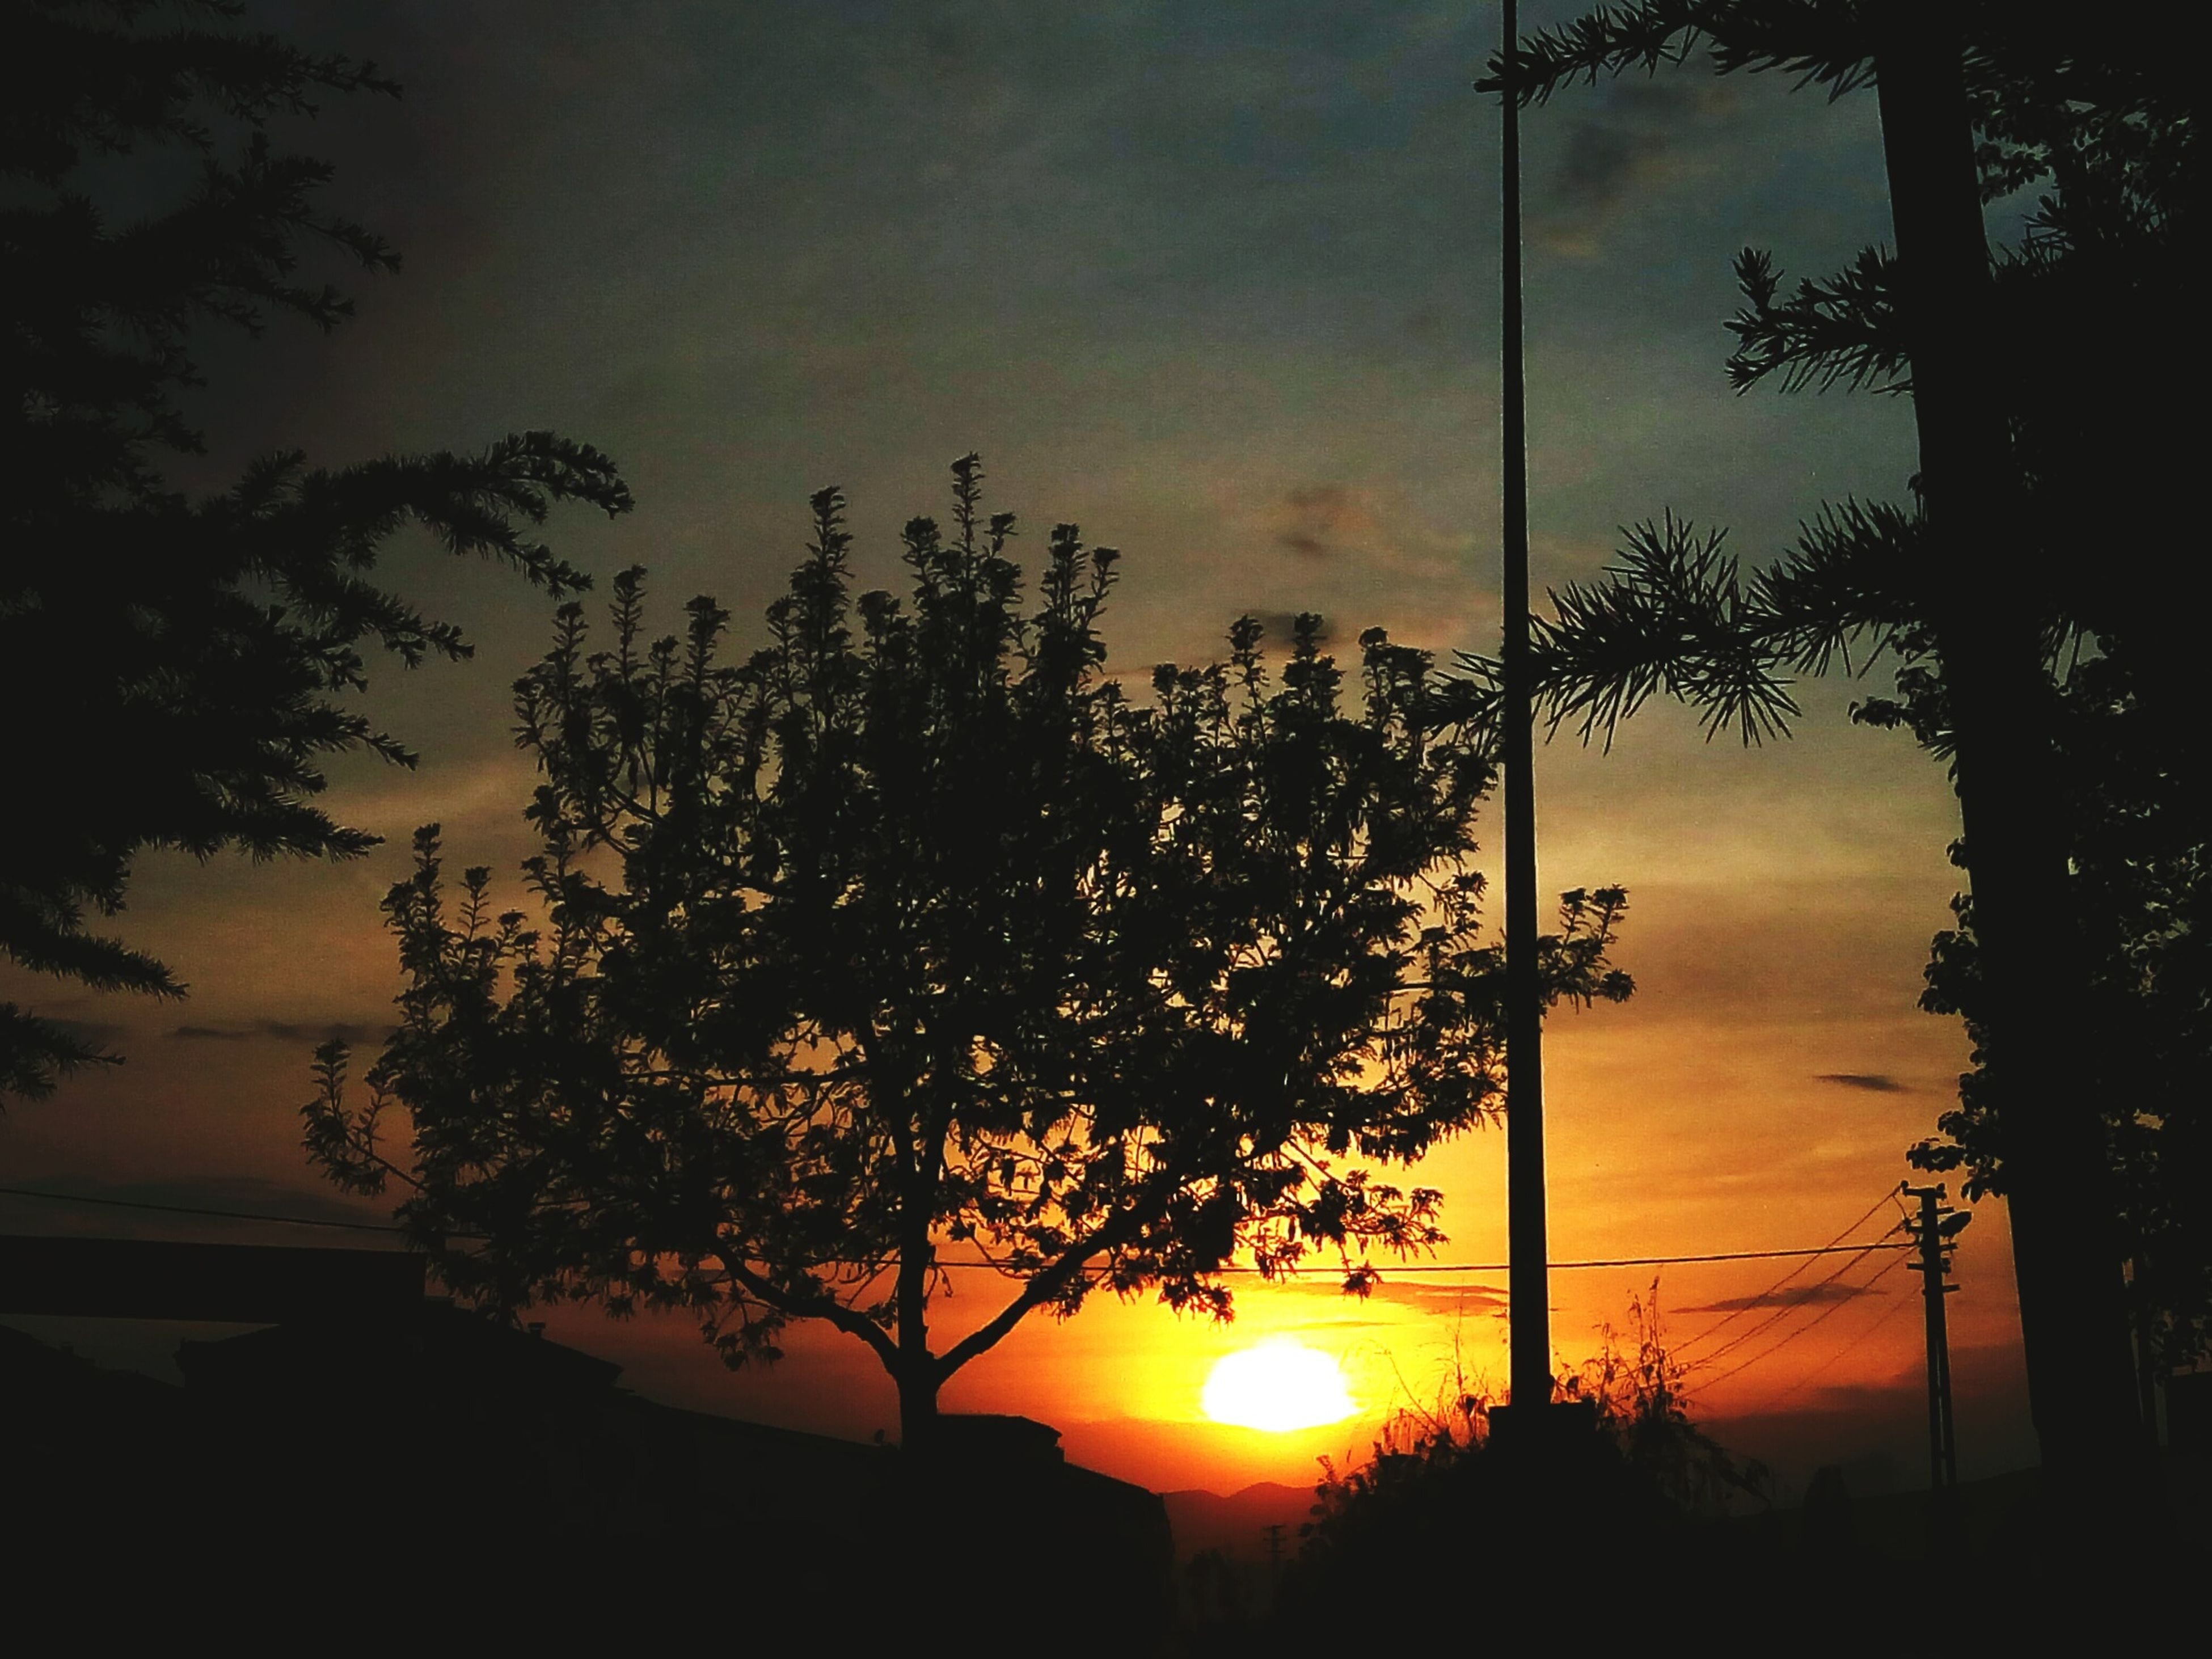 tree, sunset, sky, cloud - sky, nature, scenics, silhouette, beauty in nature, no people, sun, growth, tranquil scene, outdoors, dusk, tranquility, low angle view, branch, moon, day